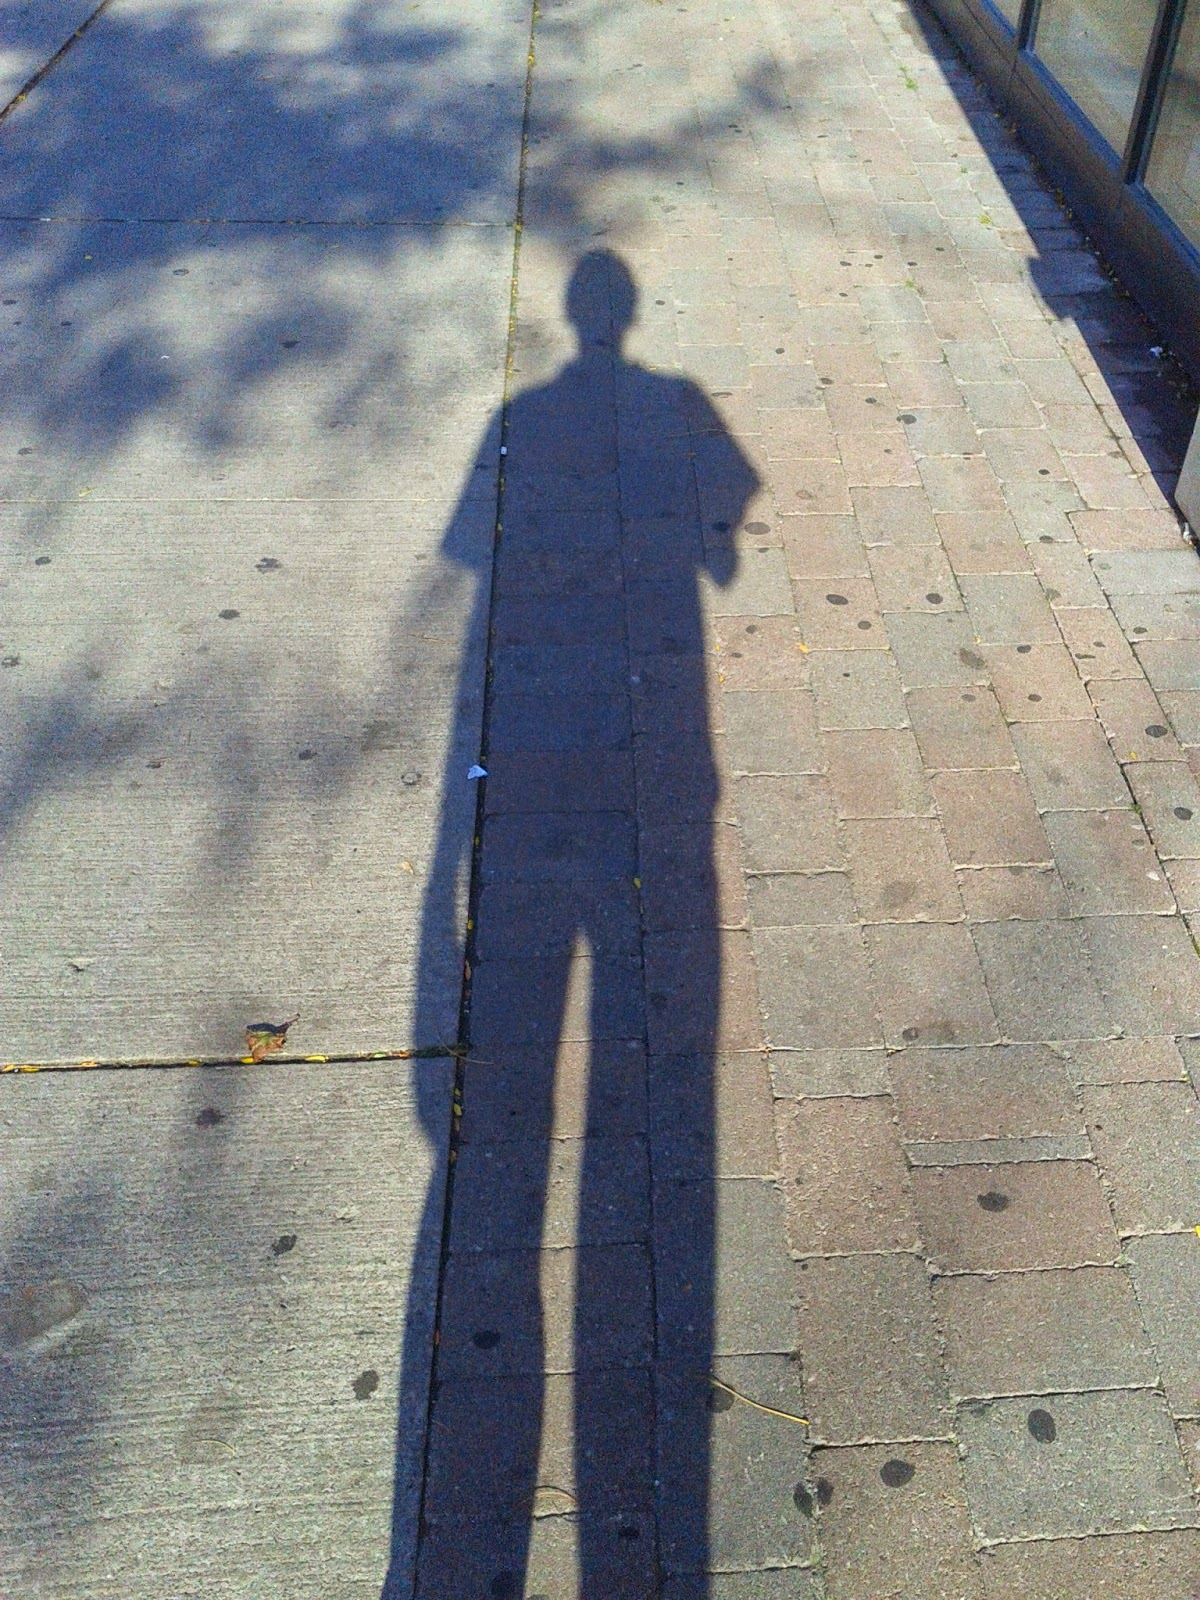 Stock photo: Tall skinny shadow